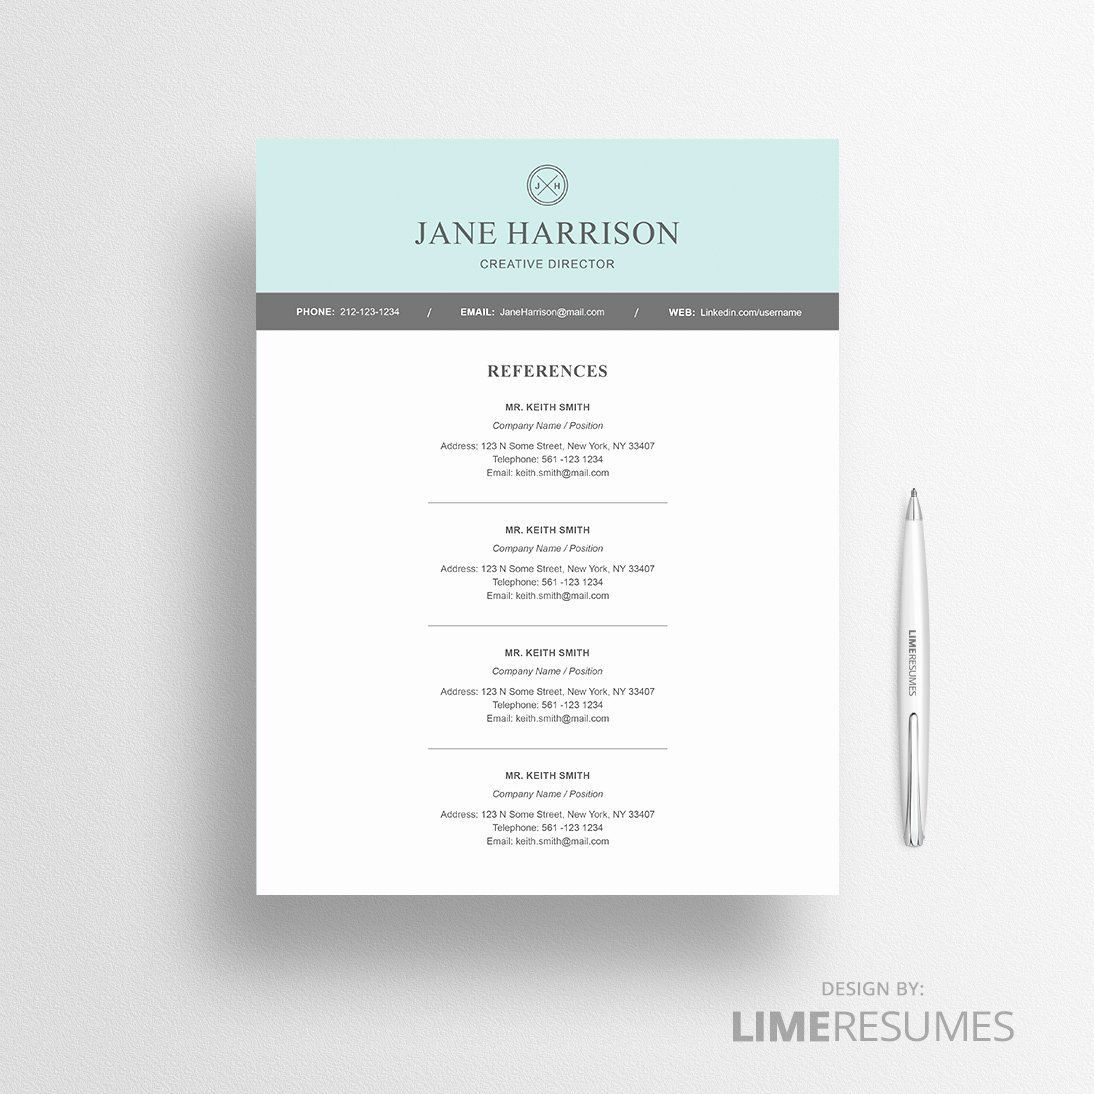 005 Unbelievable Resume Reference List Template Microsoft Word Design Full